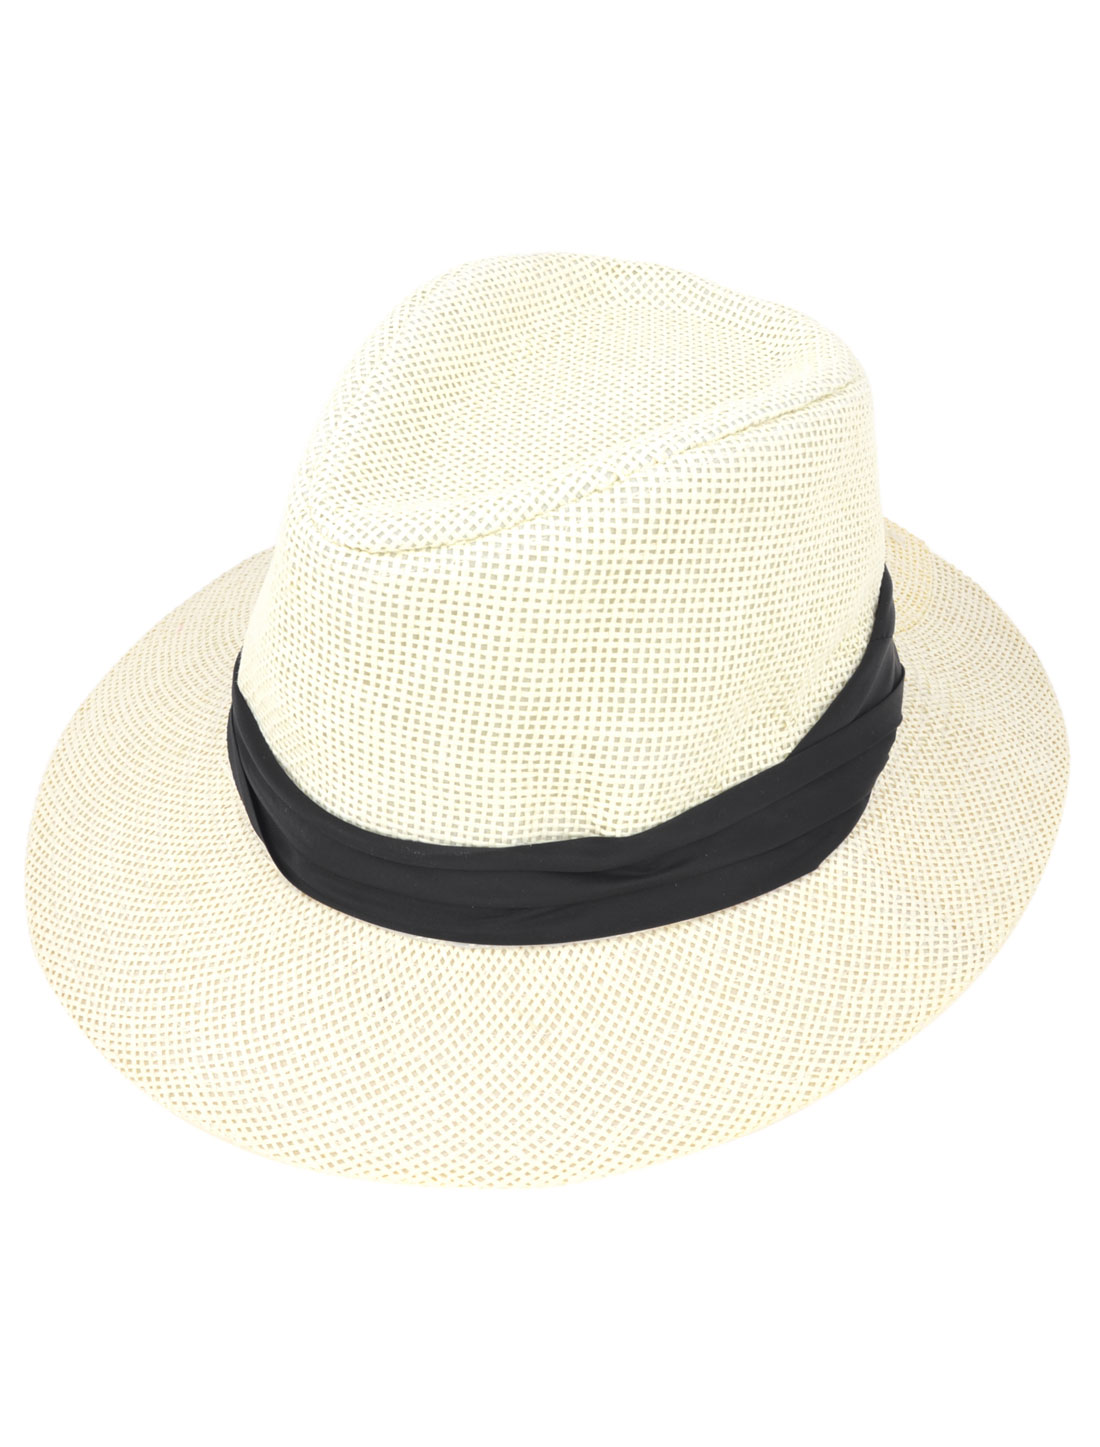 Head Detailing Round Fedora Rolled Brim Cap Stroll Hat Ivory for Man